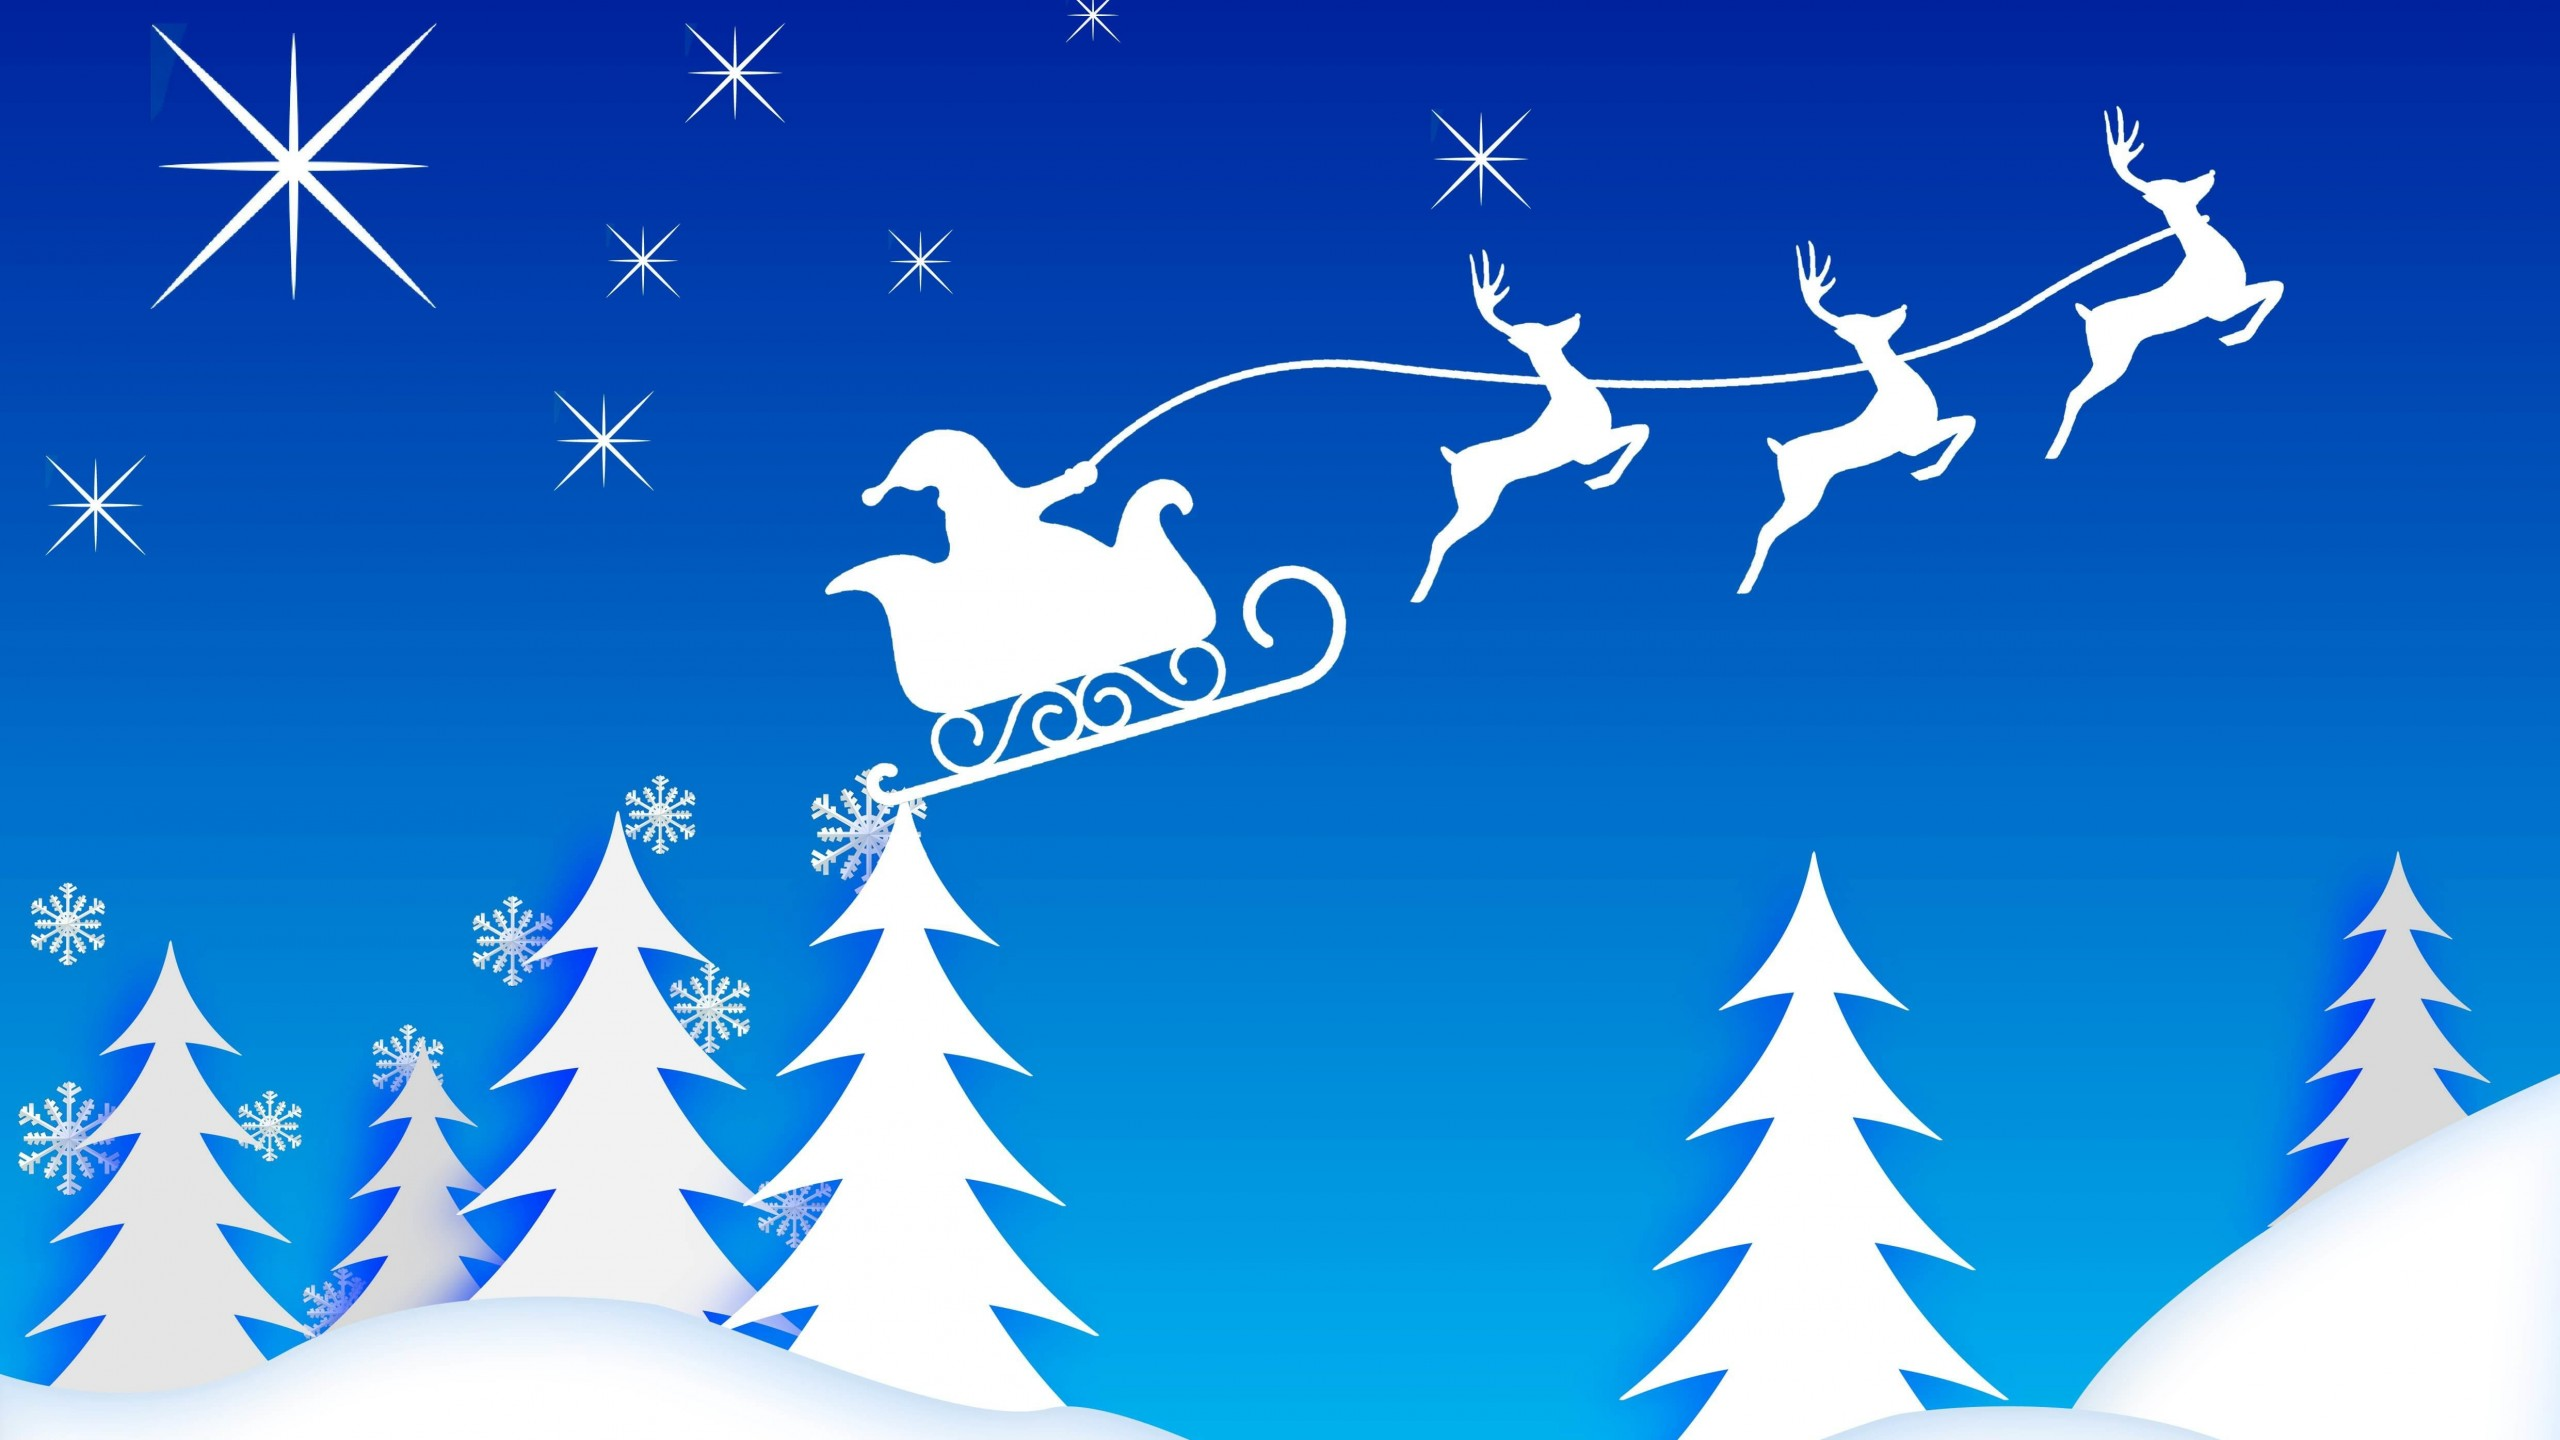 Santa's Sleigh Illustration Wallpaper for Desktop 2560x1440